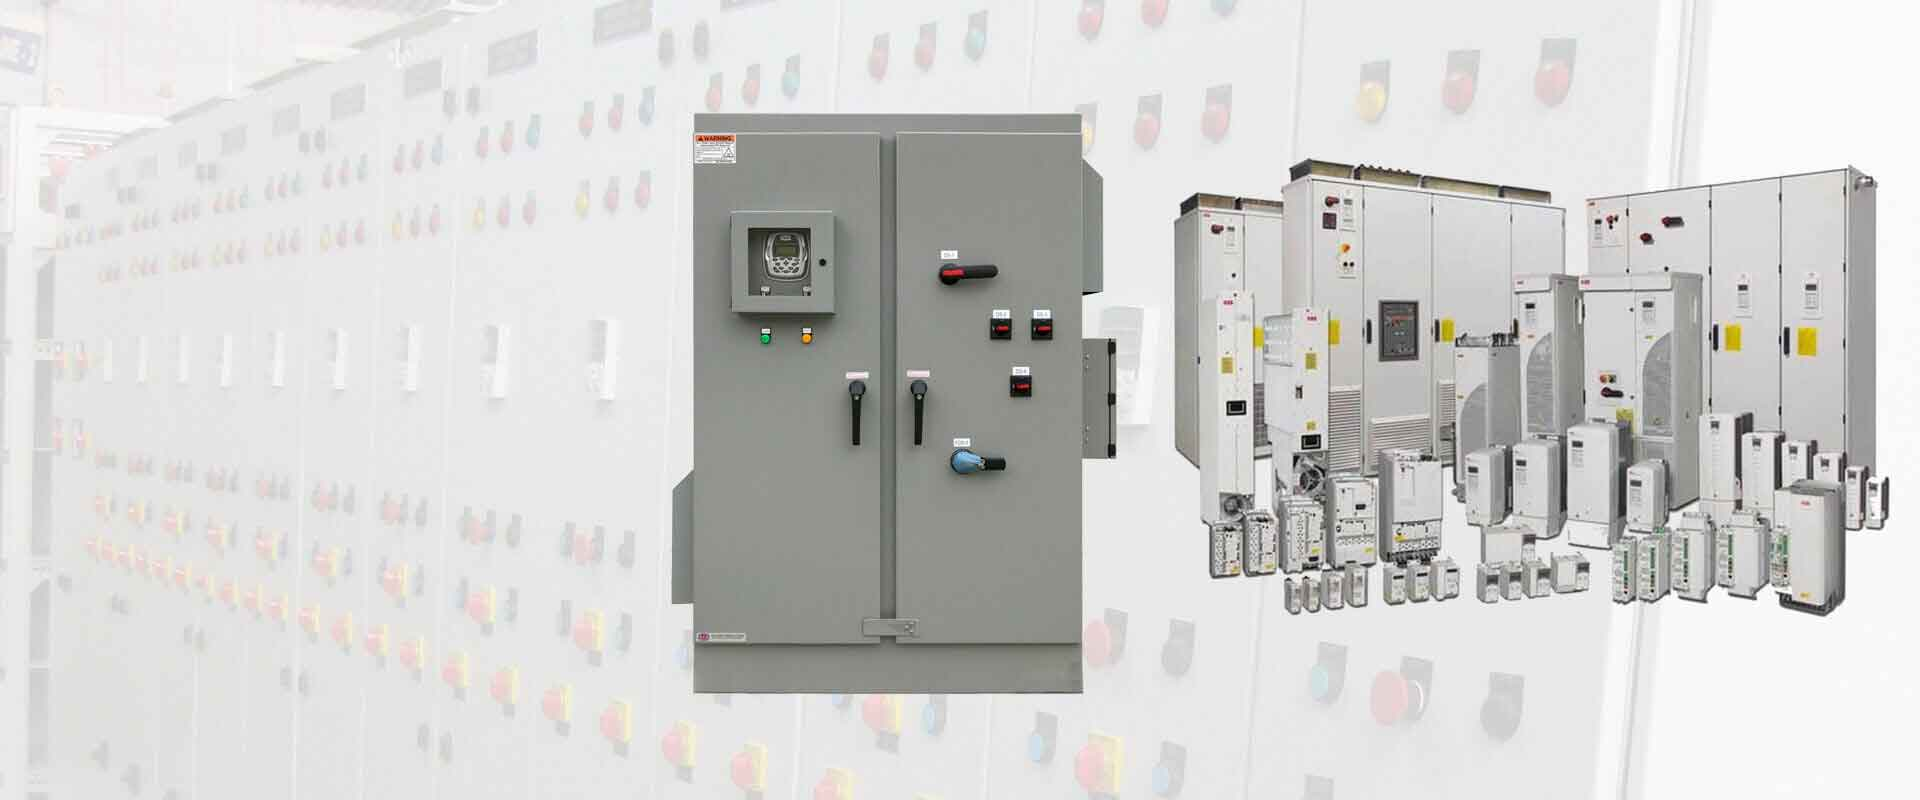 VFD Panel Manufacturers In Saraswati Vihar